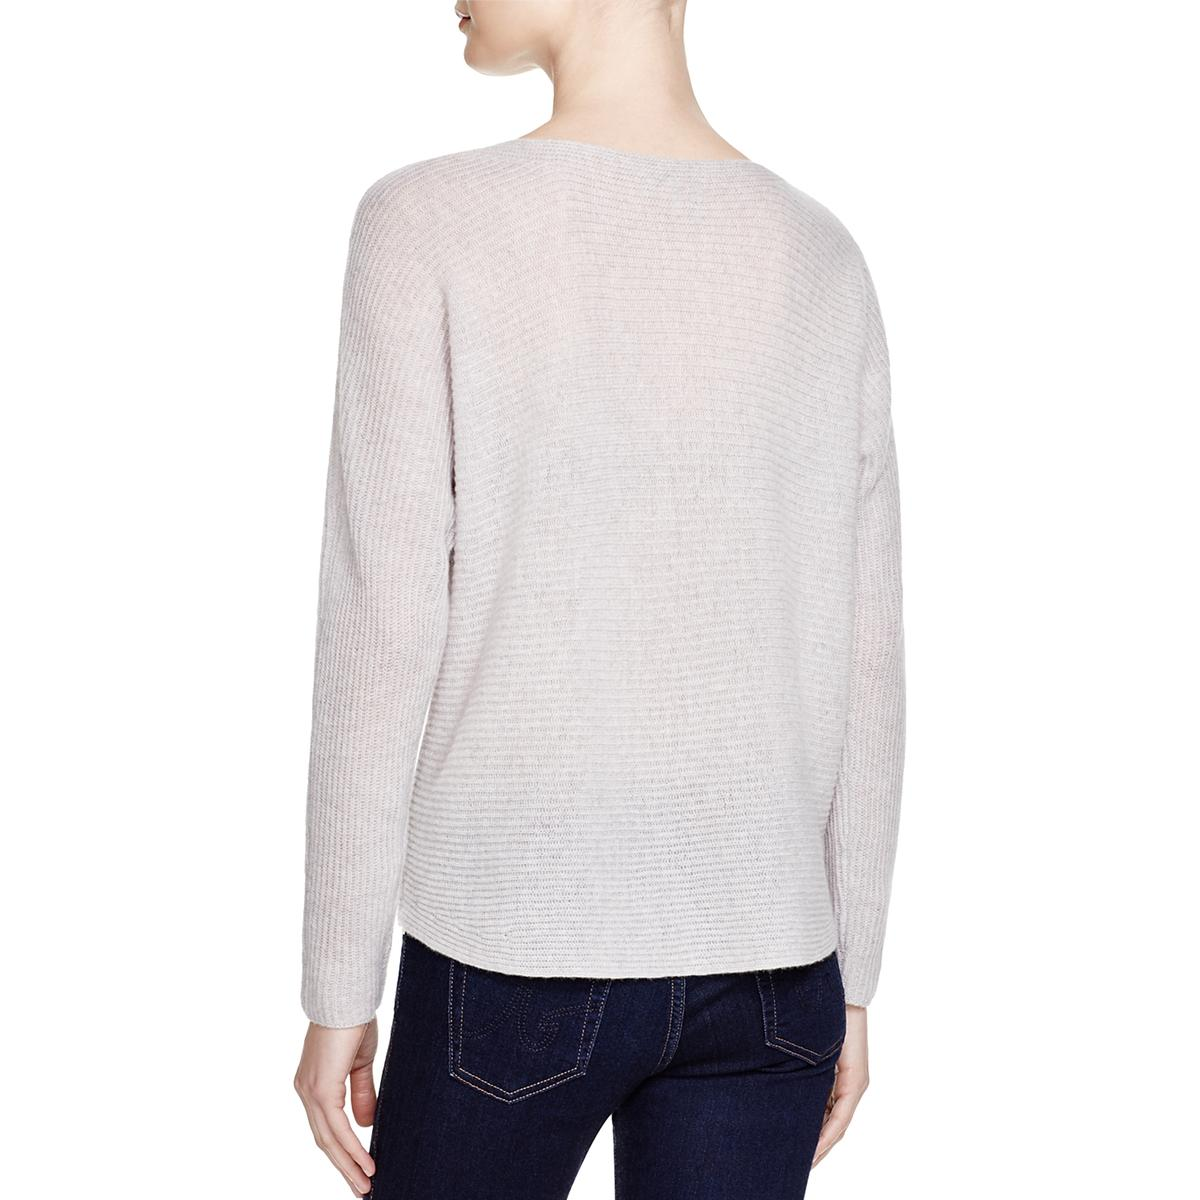 Joie-Womens-Cashmere-Long-Sleeves-Scoop-Neck-Pullover-Sweater-Top-BHFO-3882 thumbnail 8